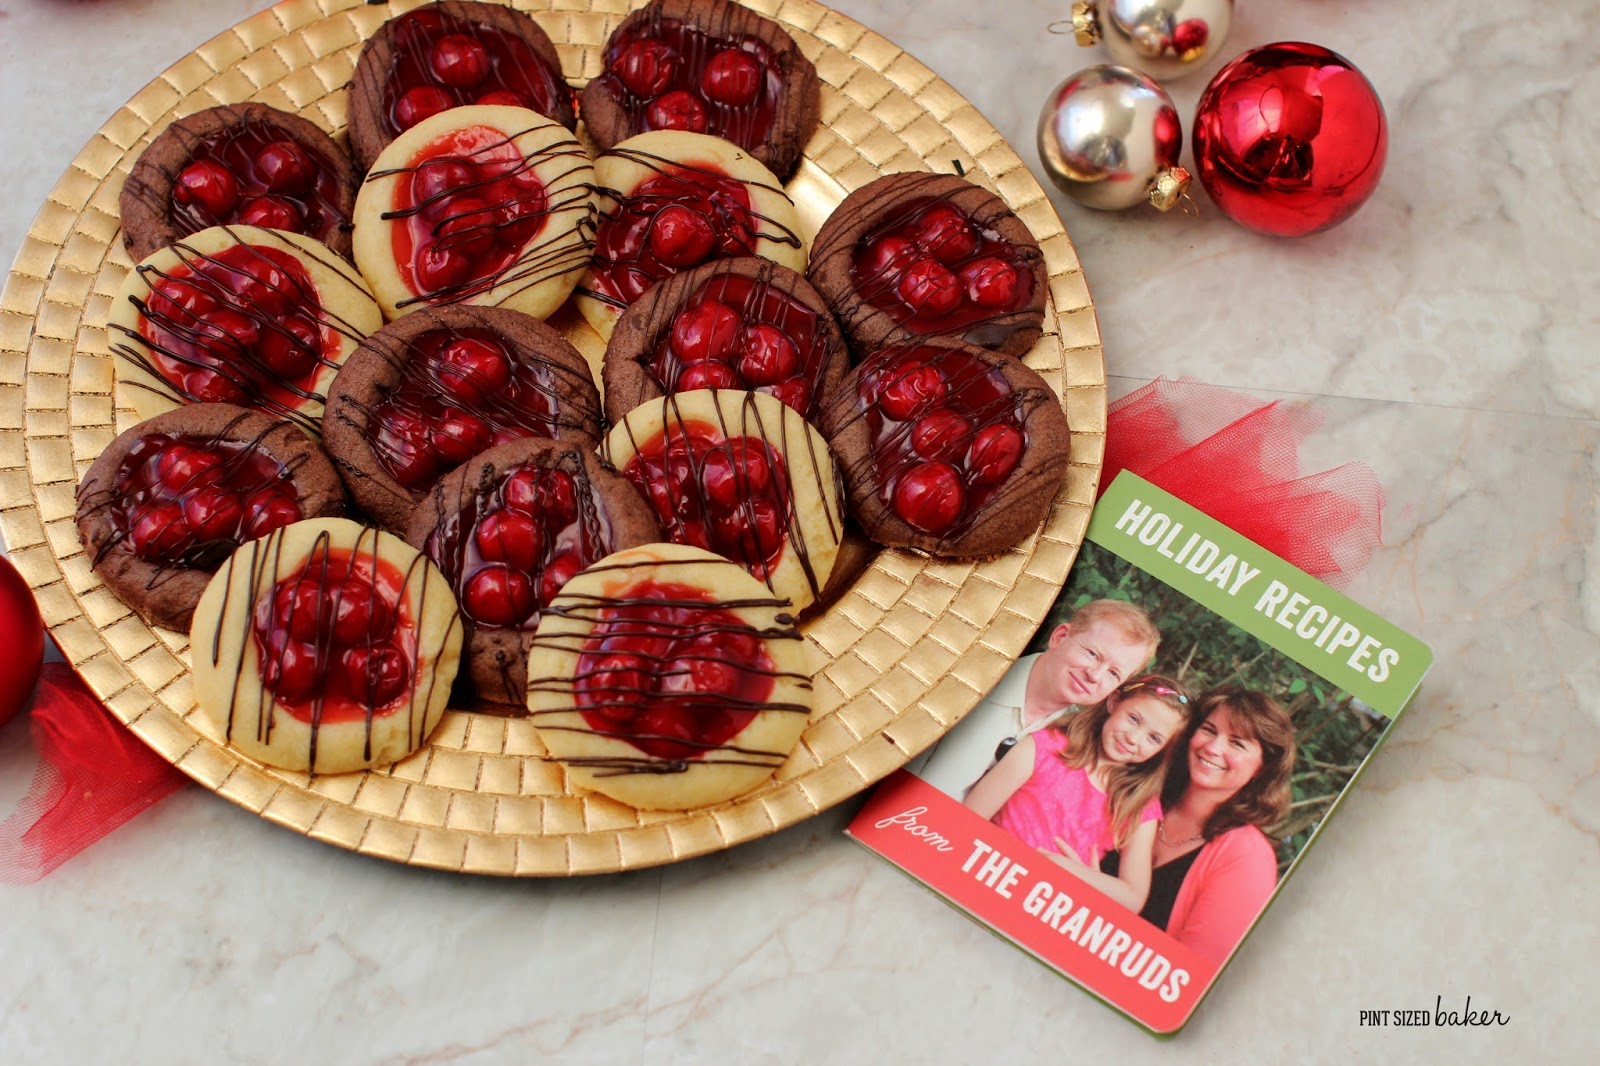 Enjoy the flavor of a cherry pie in these fun and easy Cherry Pie Thumbprint Cookies! You can also fill them with apple or blueberry to bake your favorite.